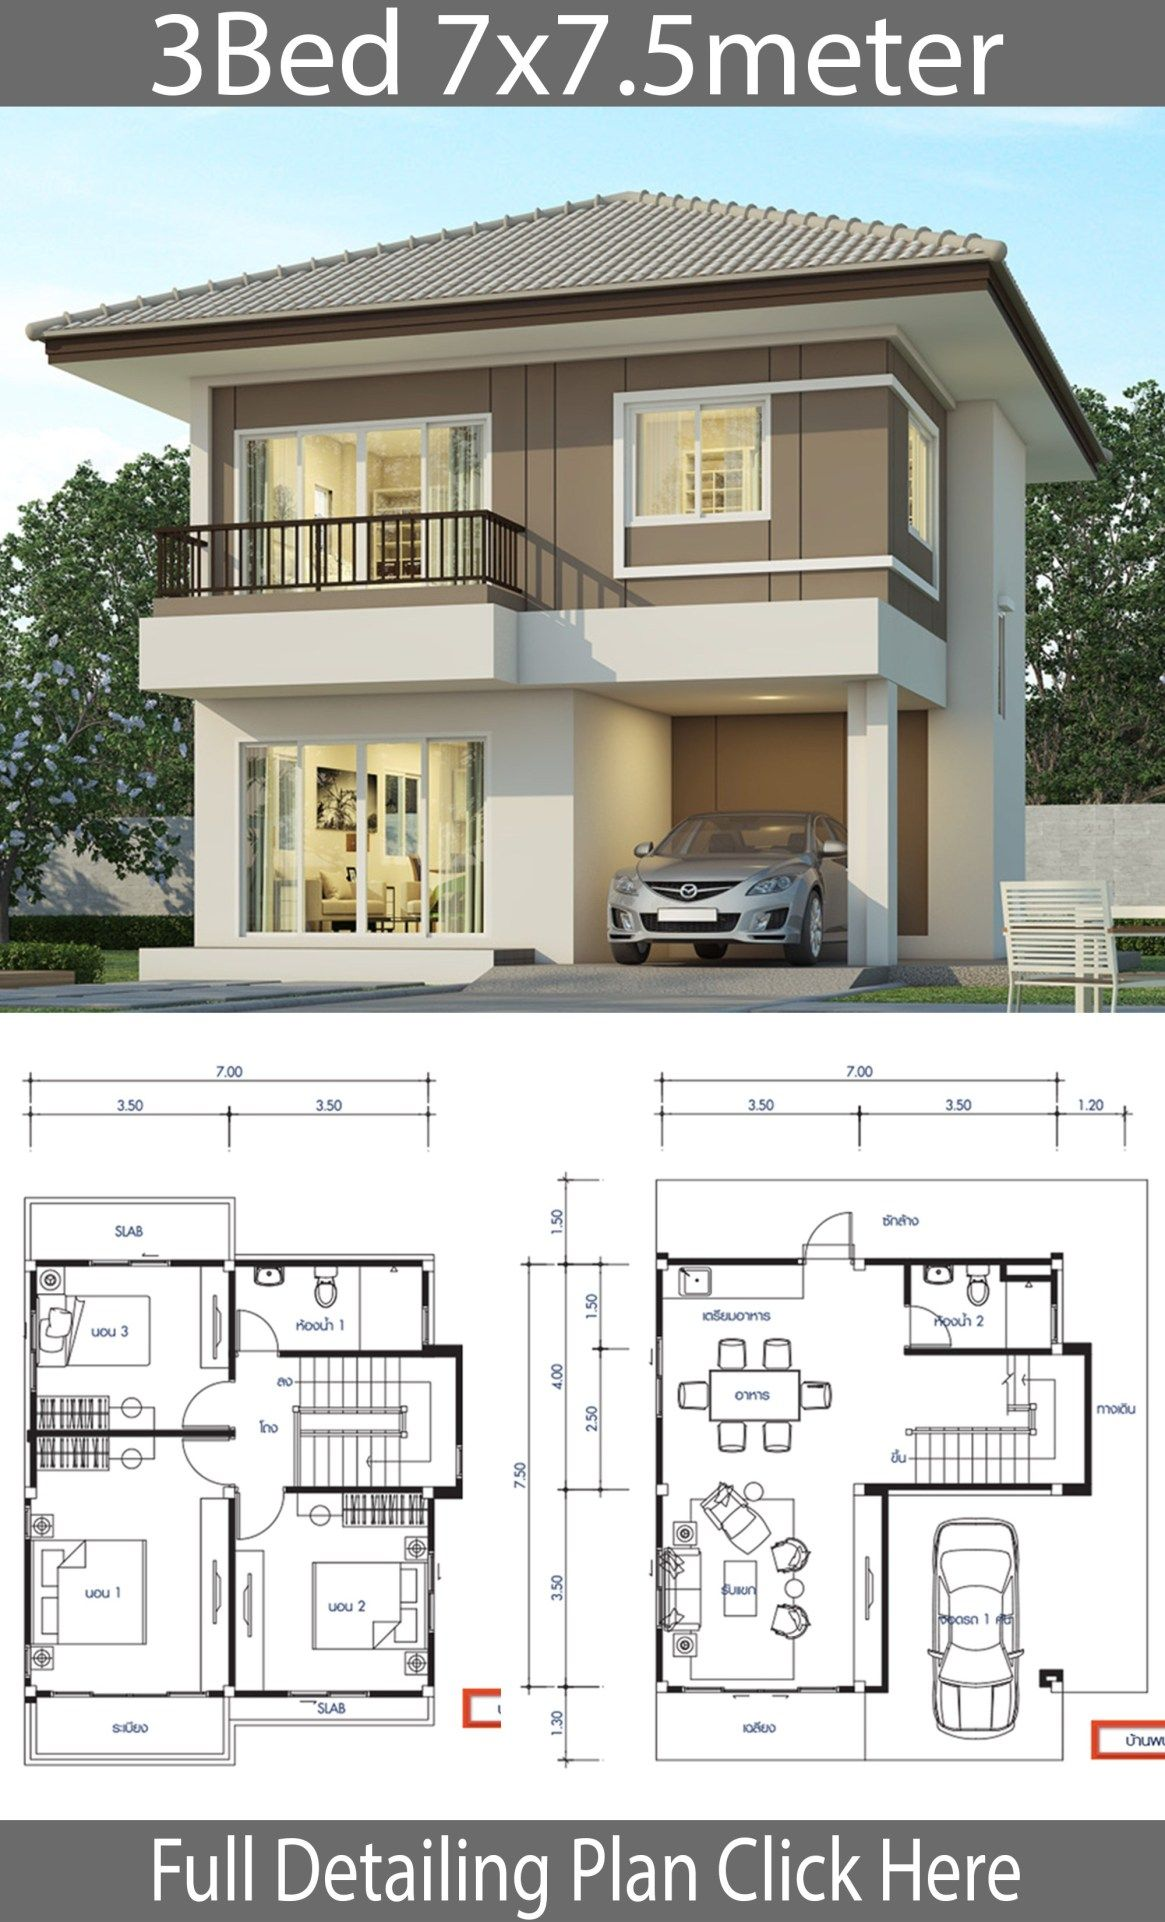 House Design Plan 7x7 5m With 3 Bedrooms Home Design With Plansearch Duplex House Design 2 Storey House Design Bungalow House Design